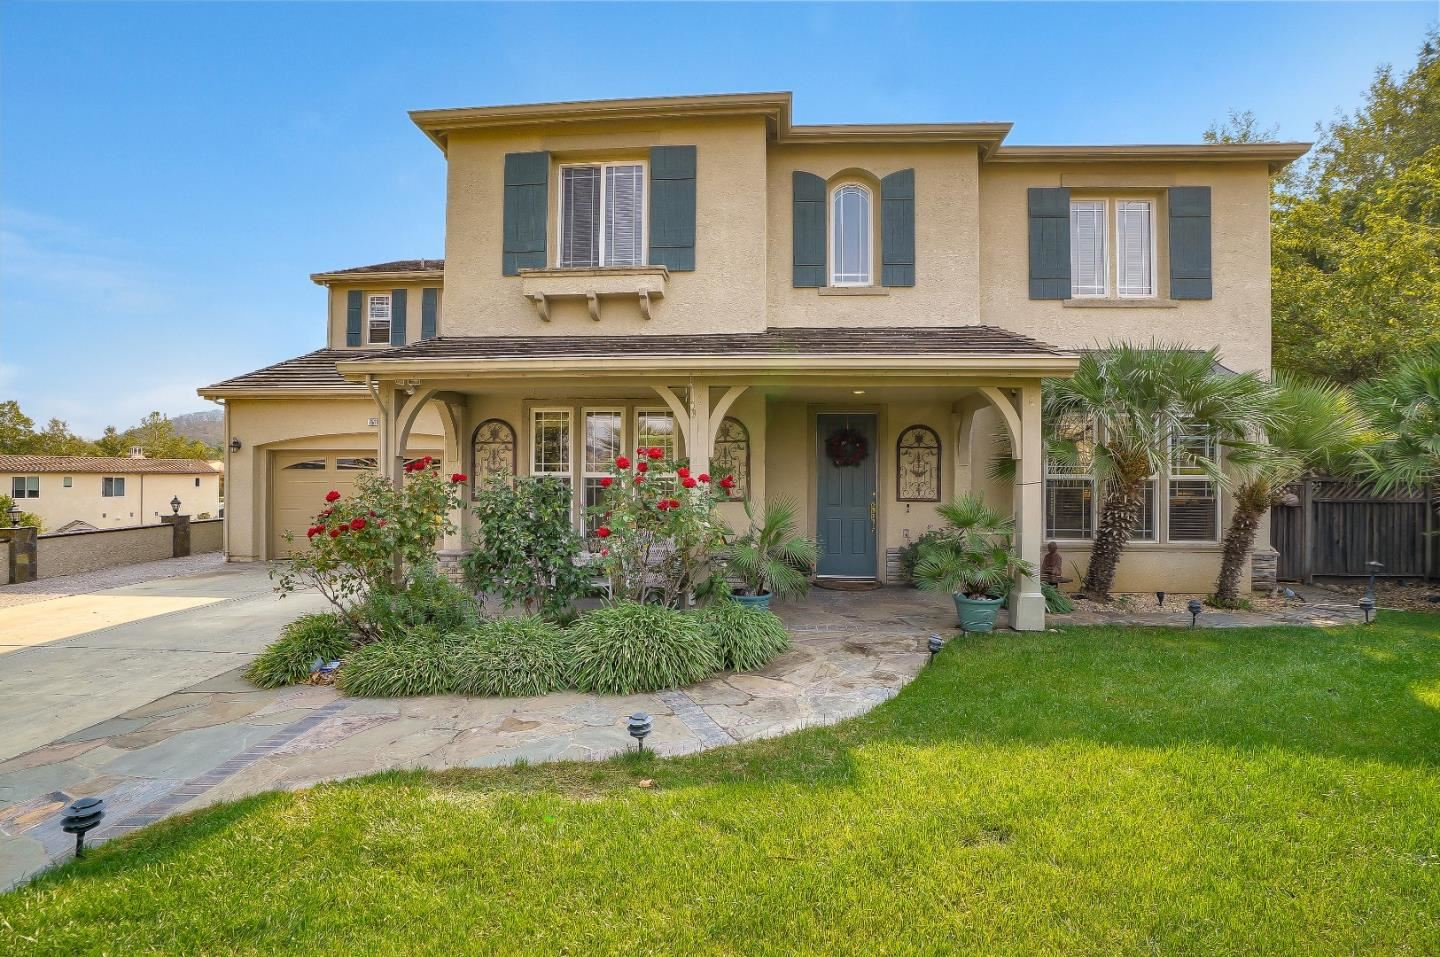 Photo for 7511 Troon CT, GILROY, CA 95020 (MLS # ML81824927)